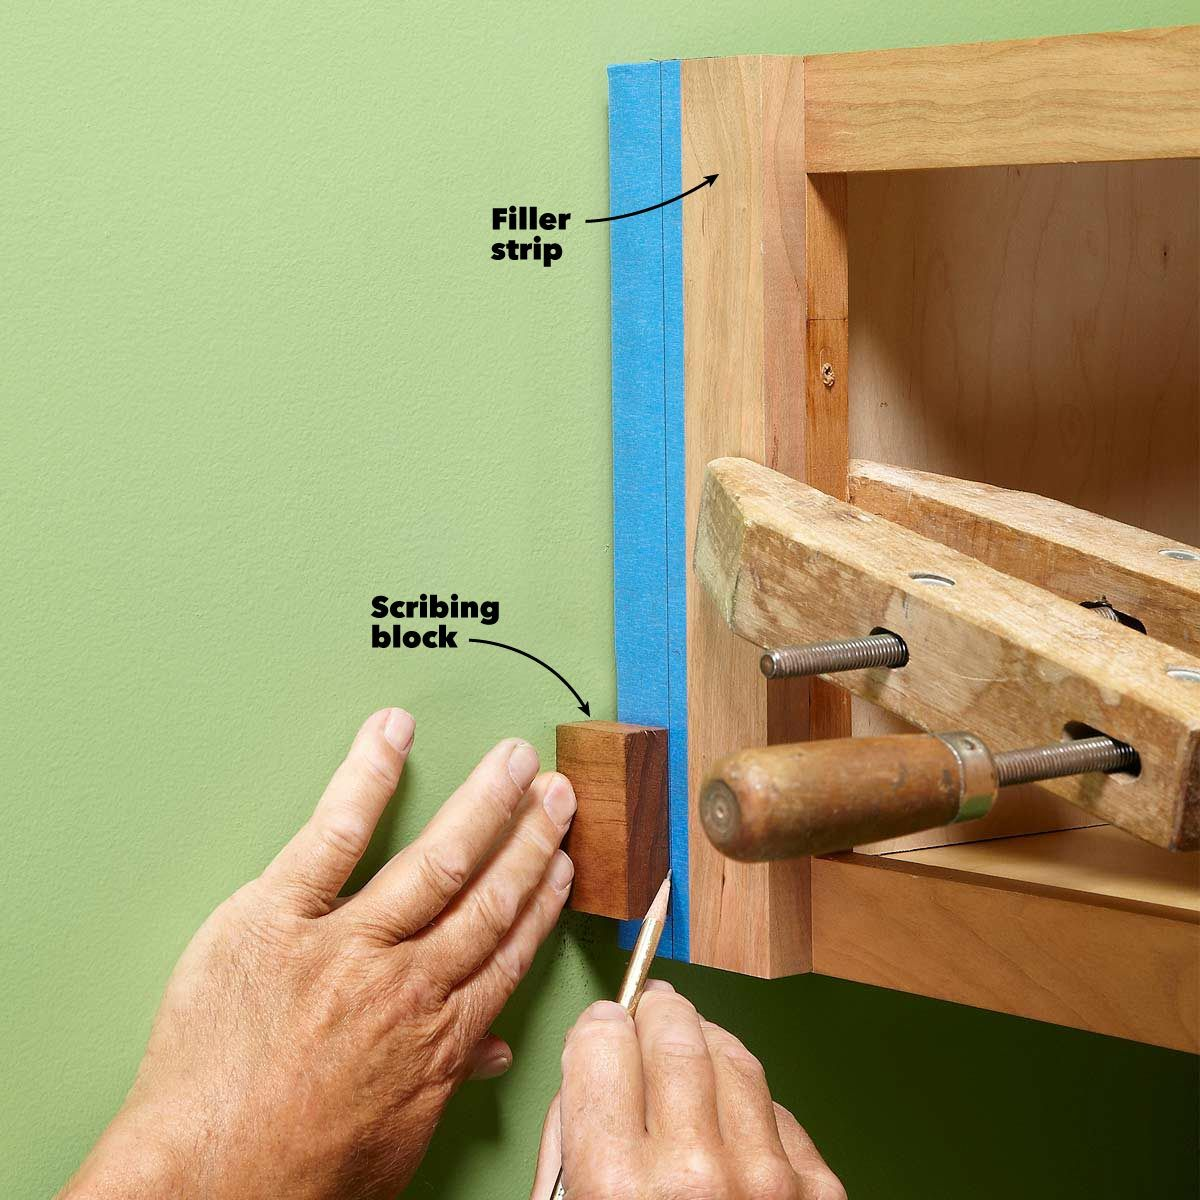 How To Install Cabinets Like A Pro In 2020 Kitchen Cabinets Installing Kitchen Cabinets Kitchen Cabinet Layout